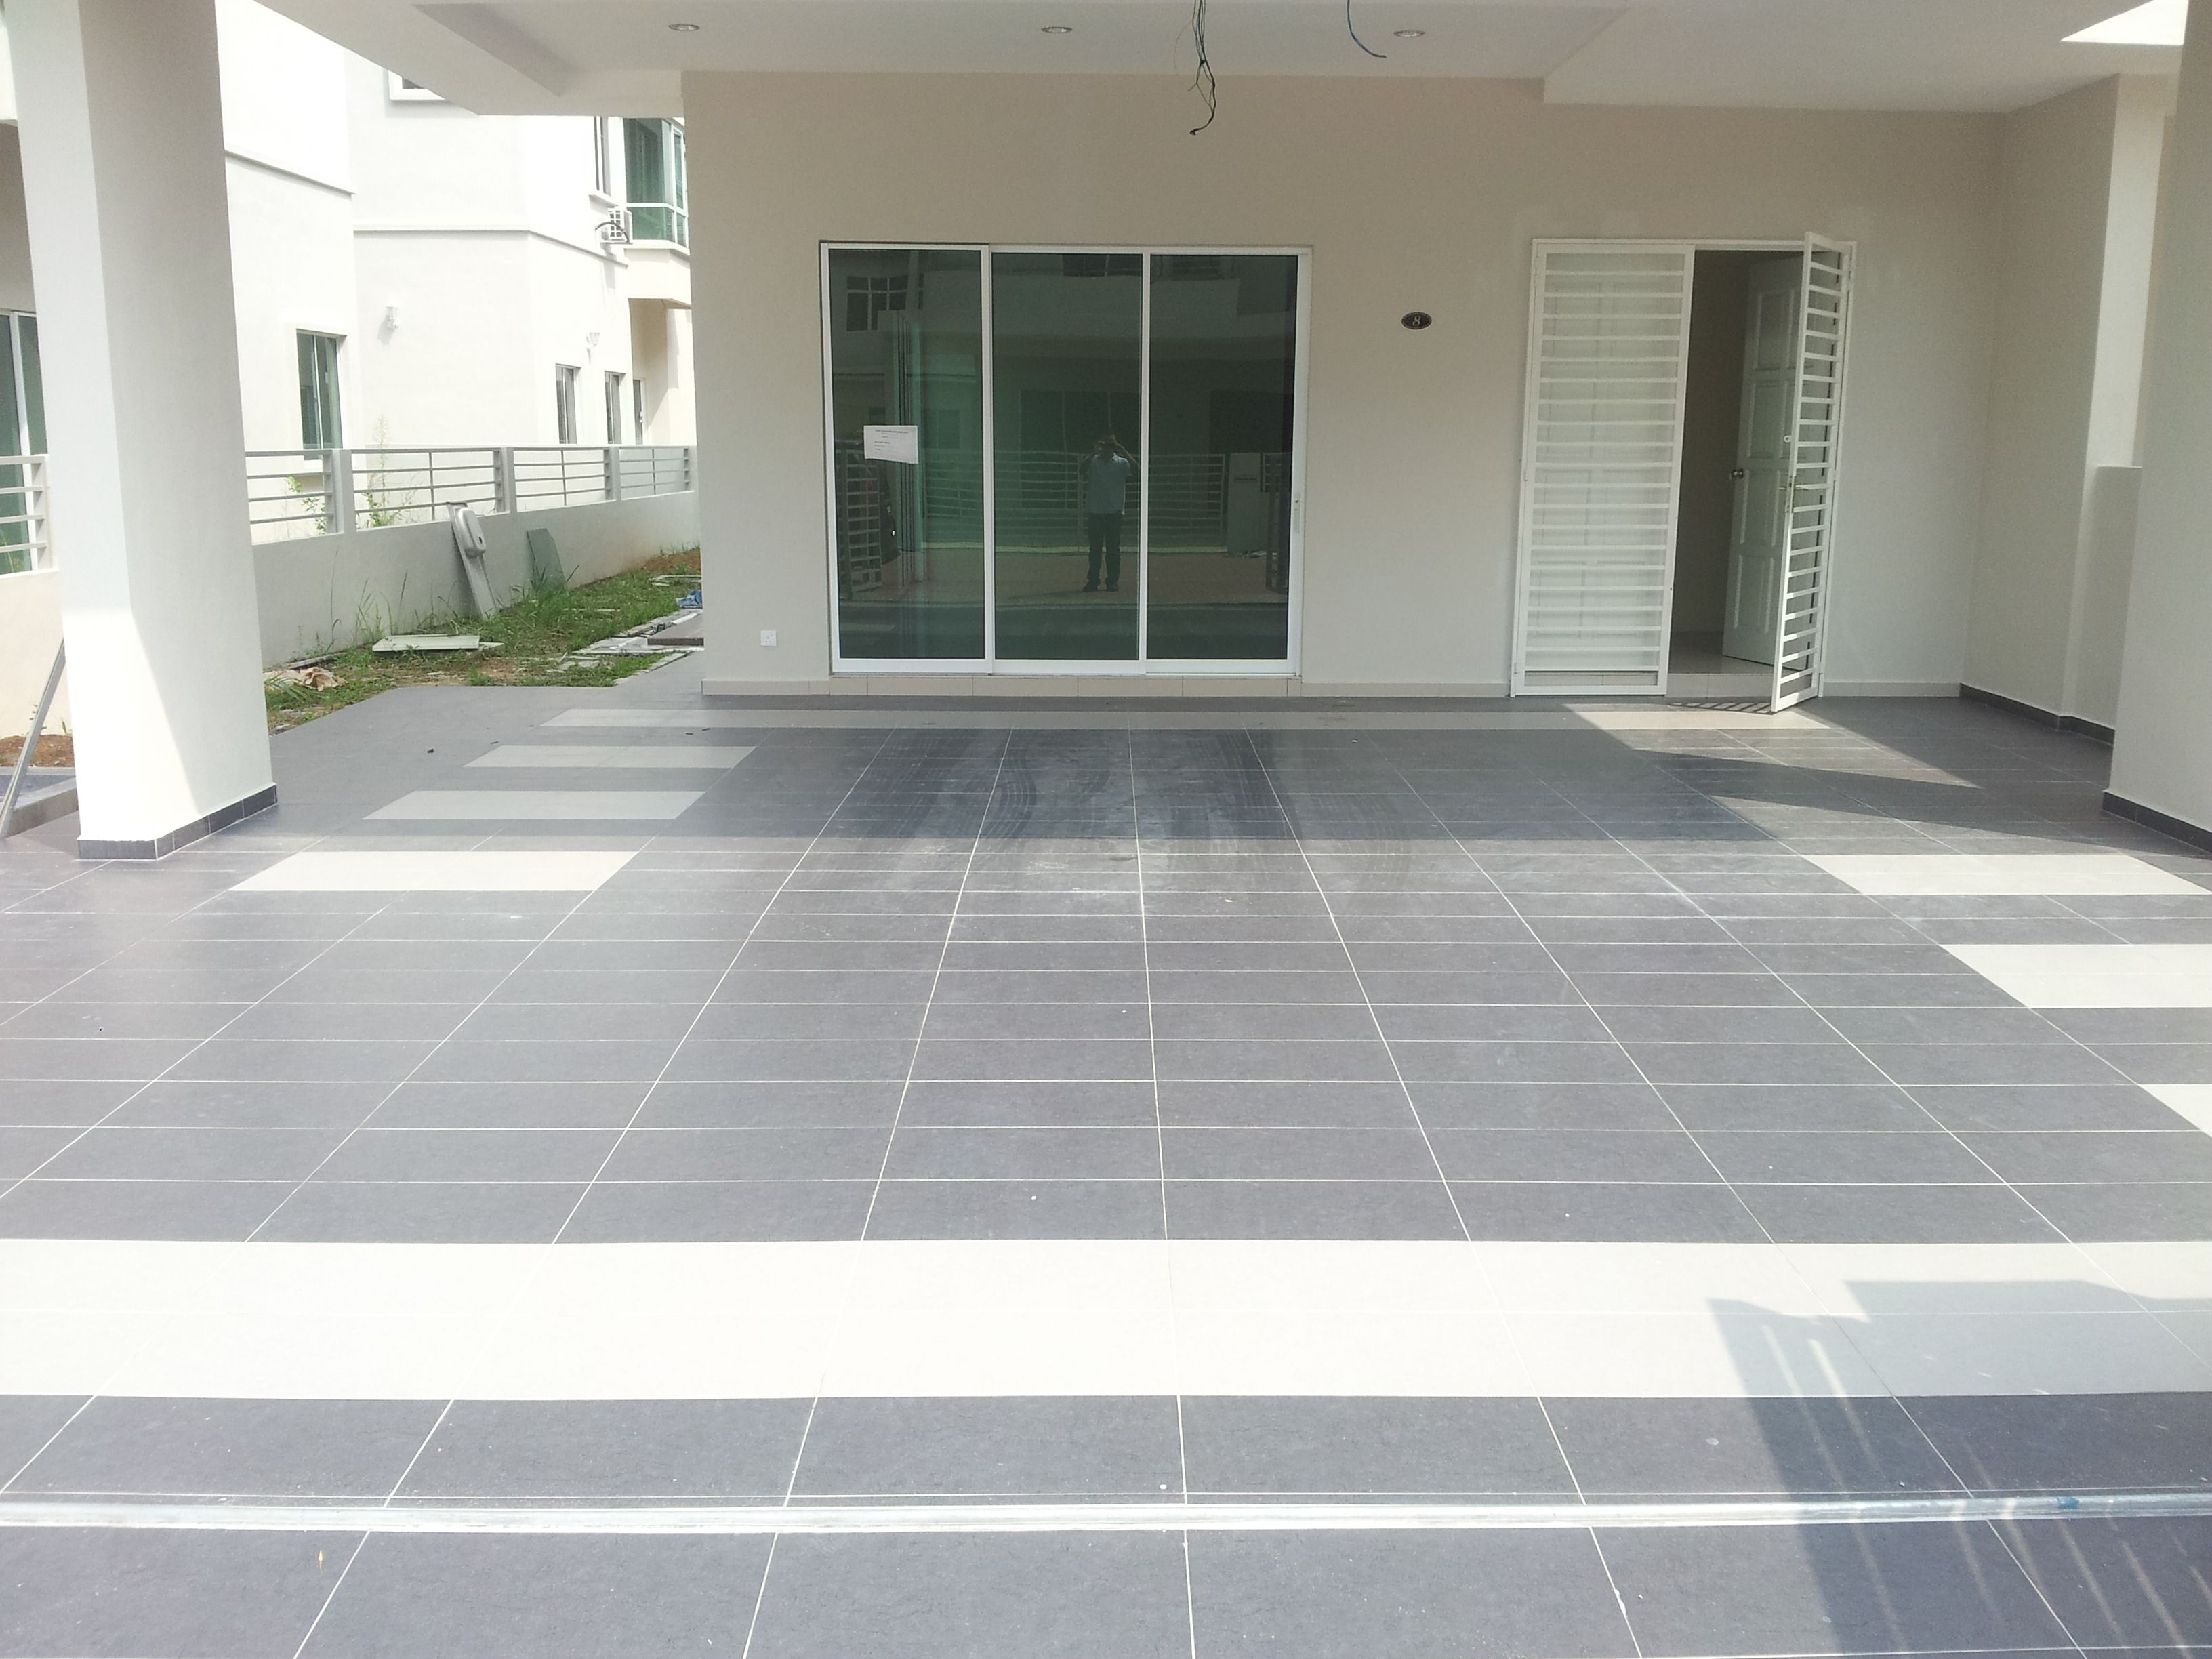 143 Reference Of Car Porch Floor Tile Designs Porch Tile Patio Flooring Floor Tile Design